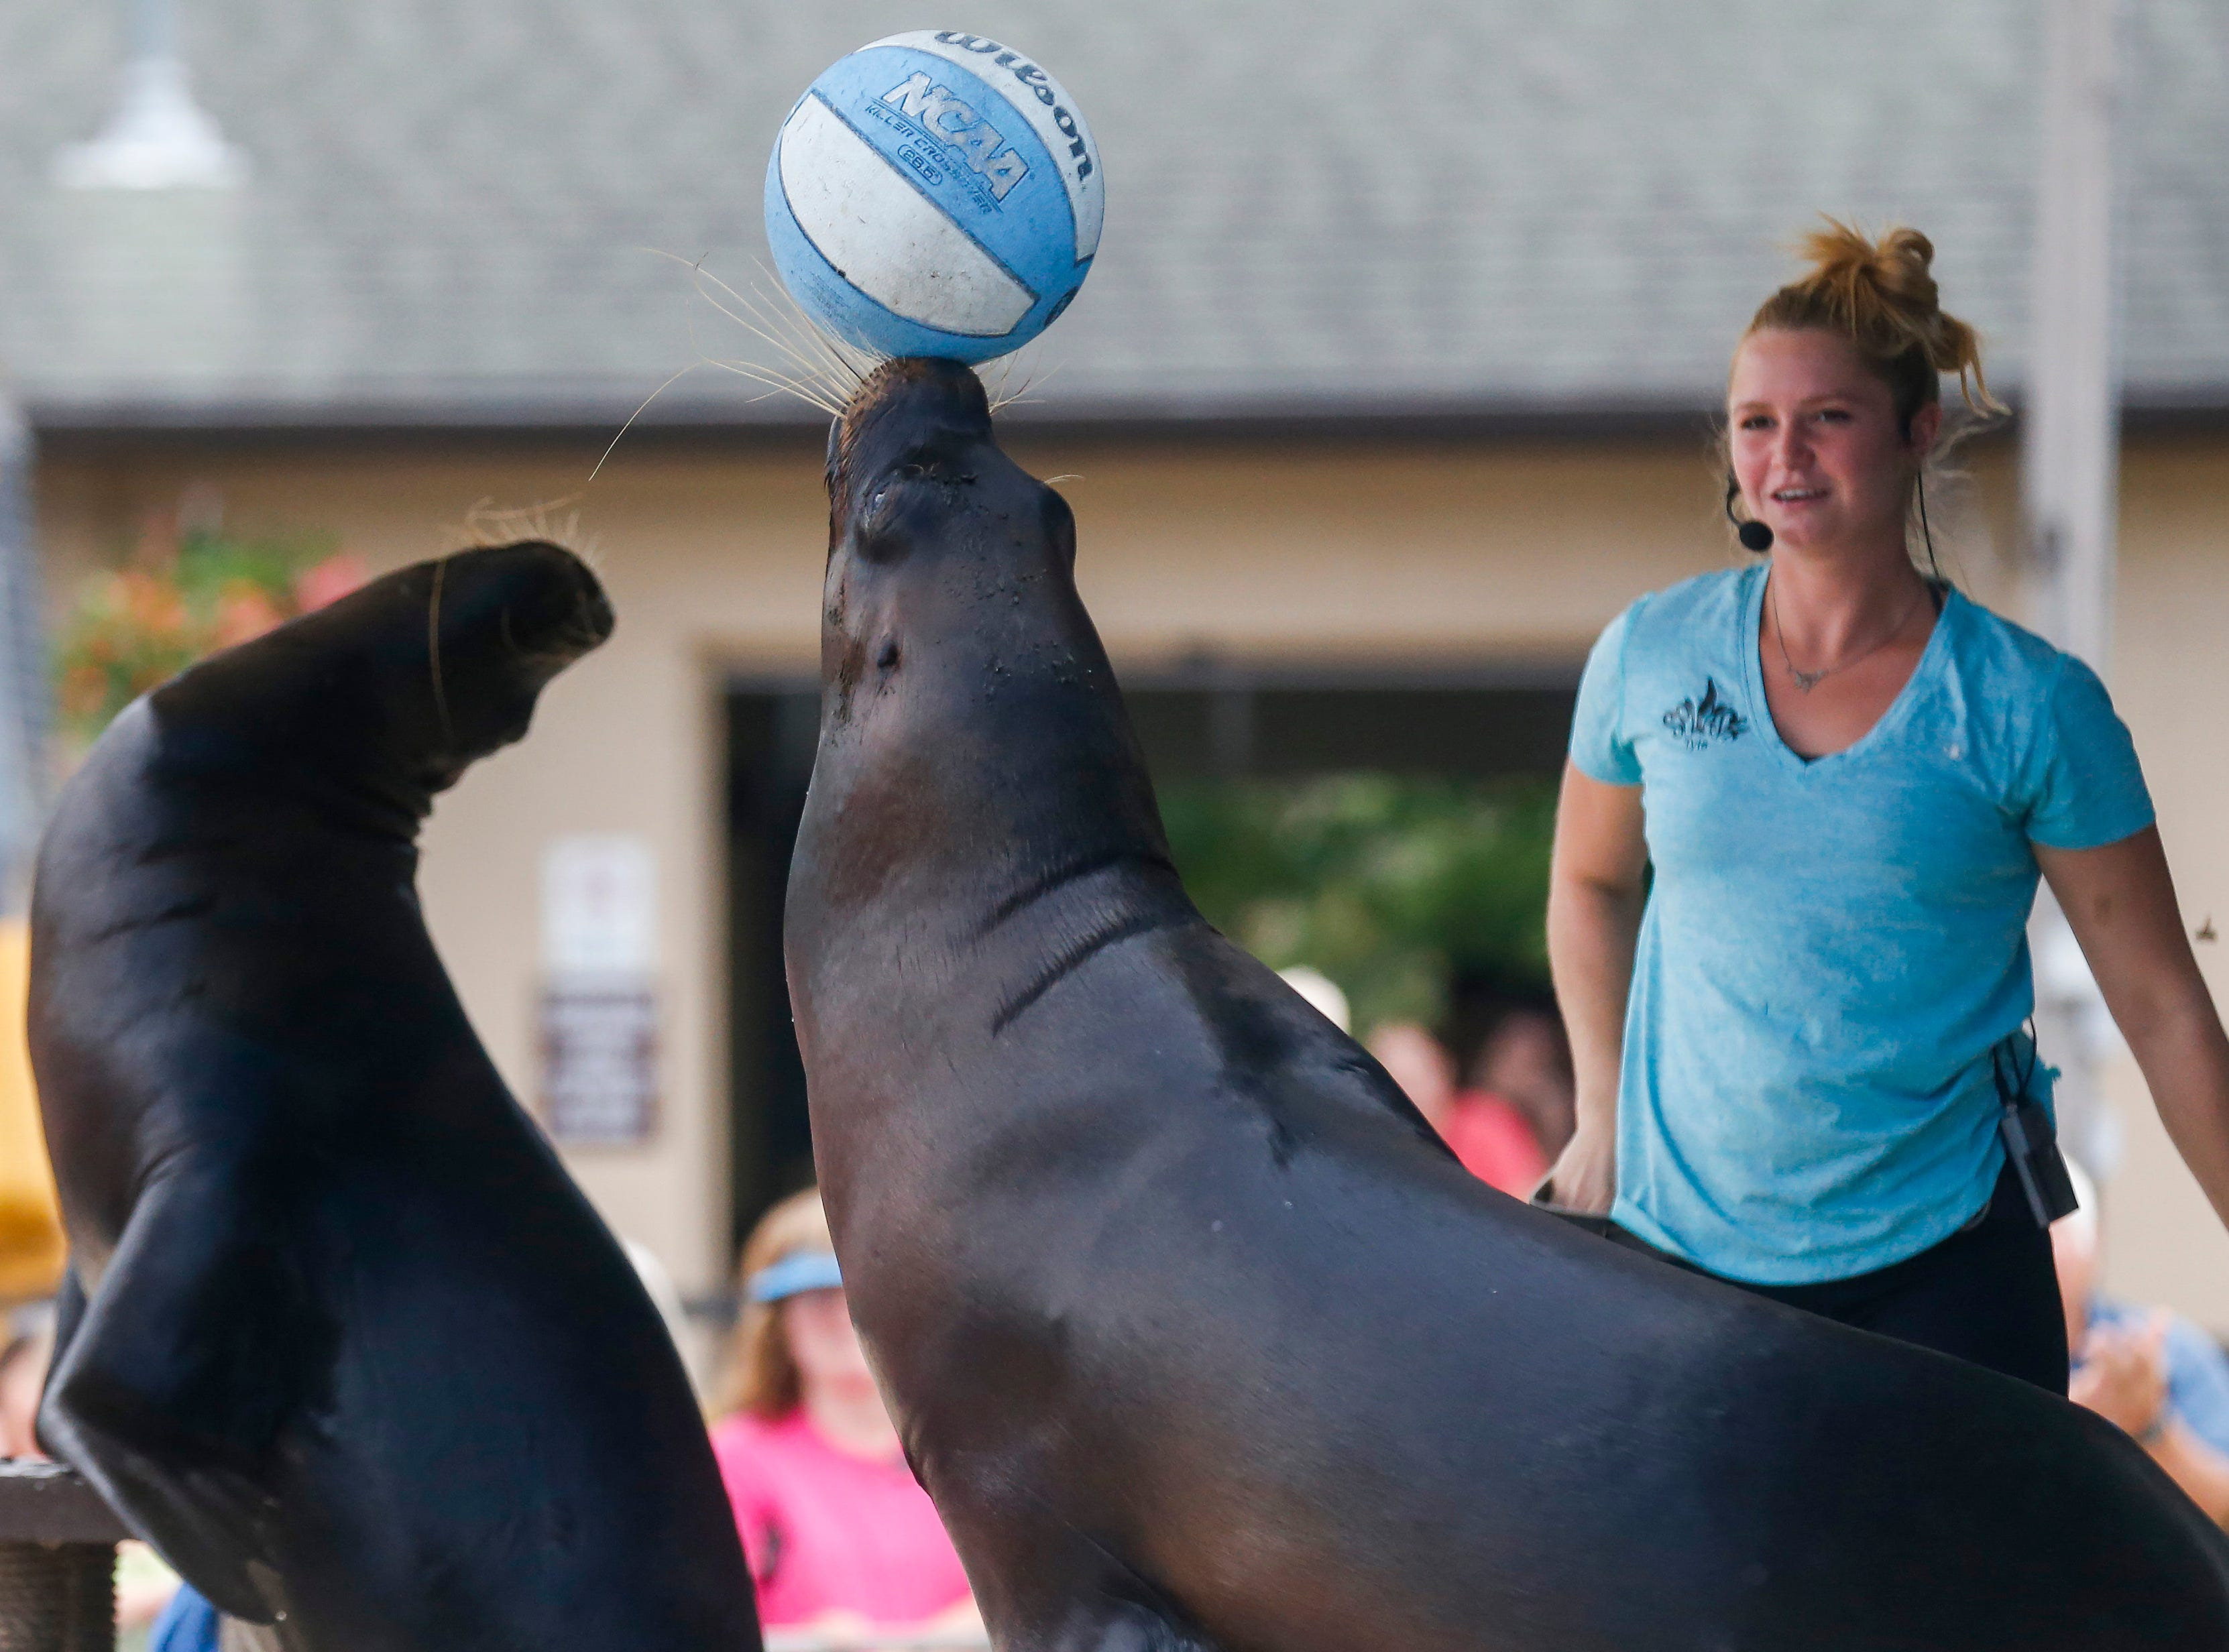 A sea lion balances a basketball on its nose during the Sea Lion Splash show at the Ozark Empire Fair on Saturday, July 28, 2018.